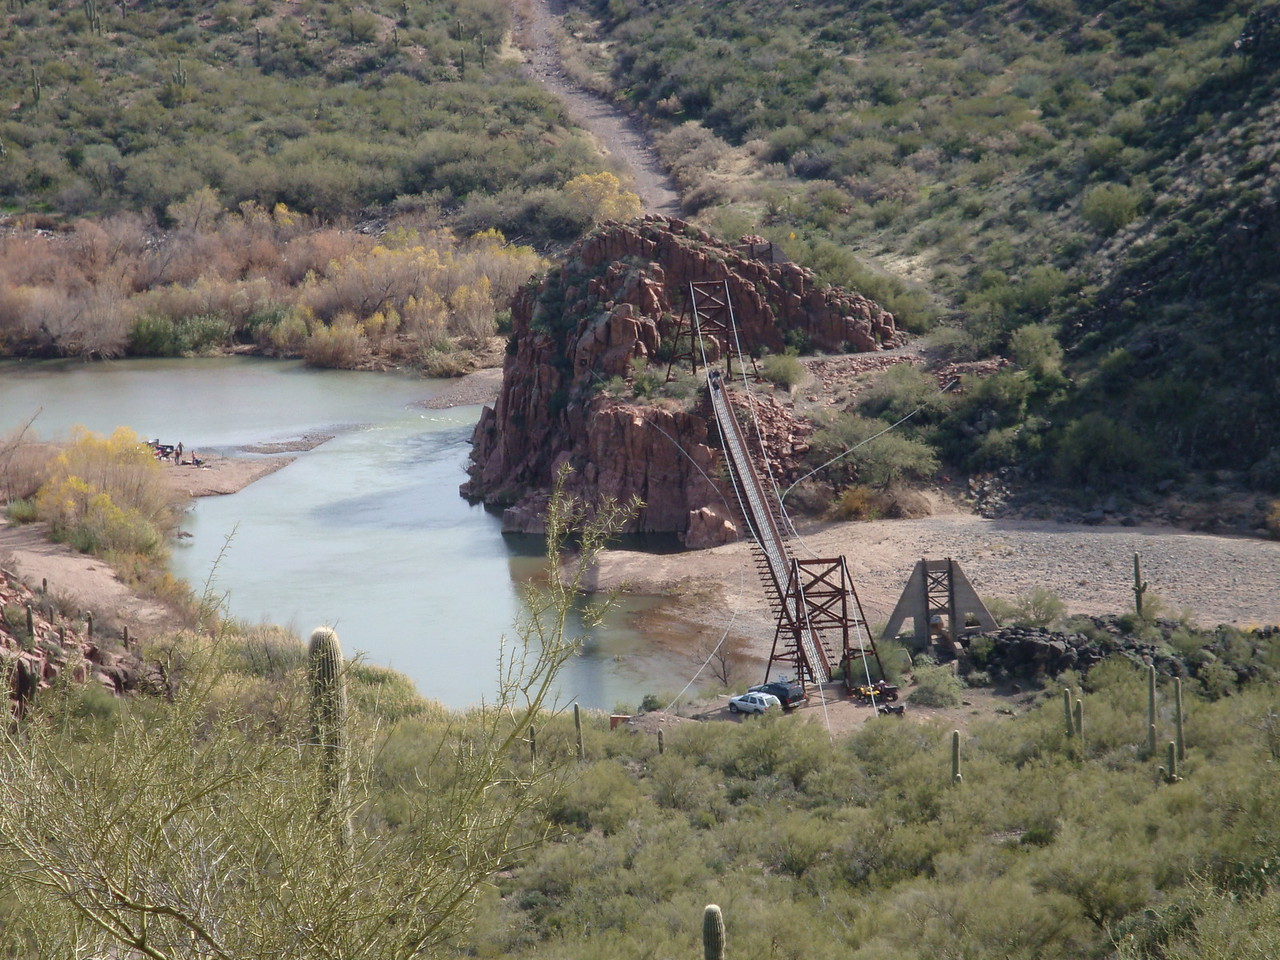 The Verde River is great for rafting when the water is up.